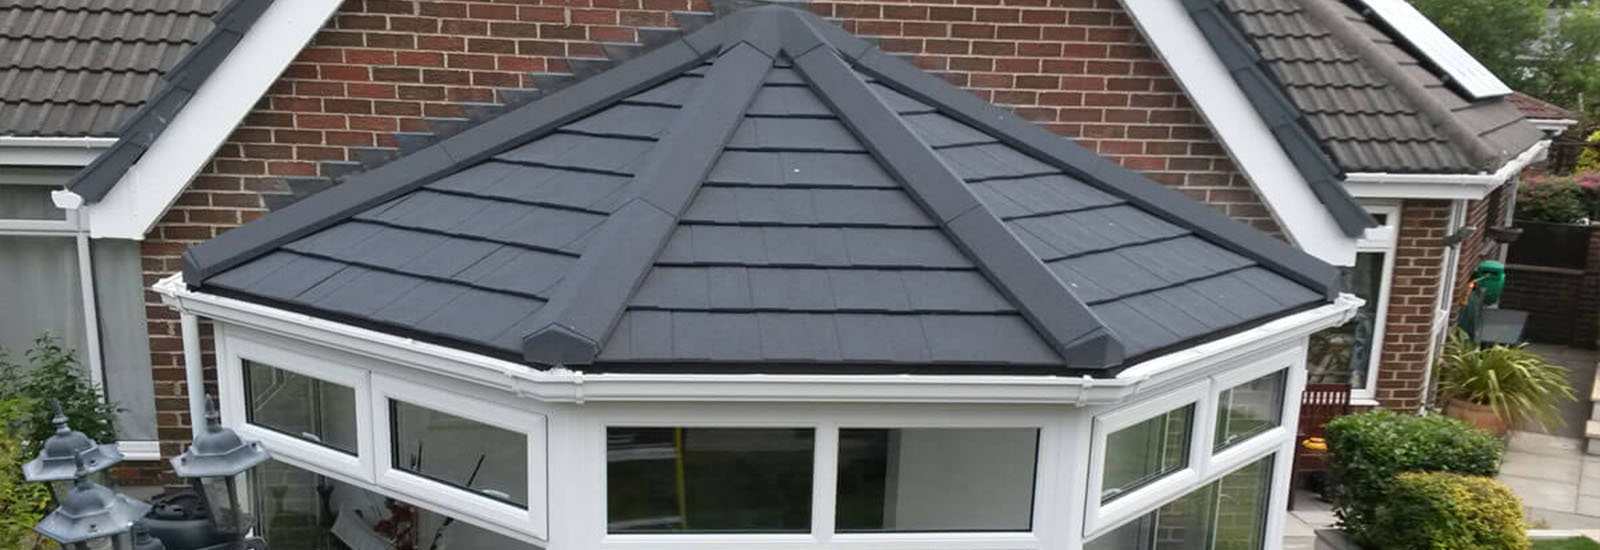 WARMroof Selby York Harrogate